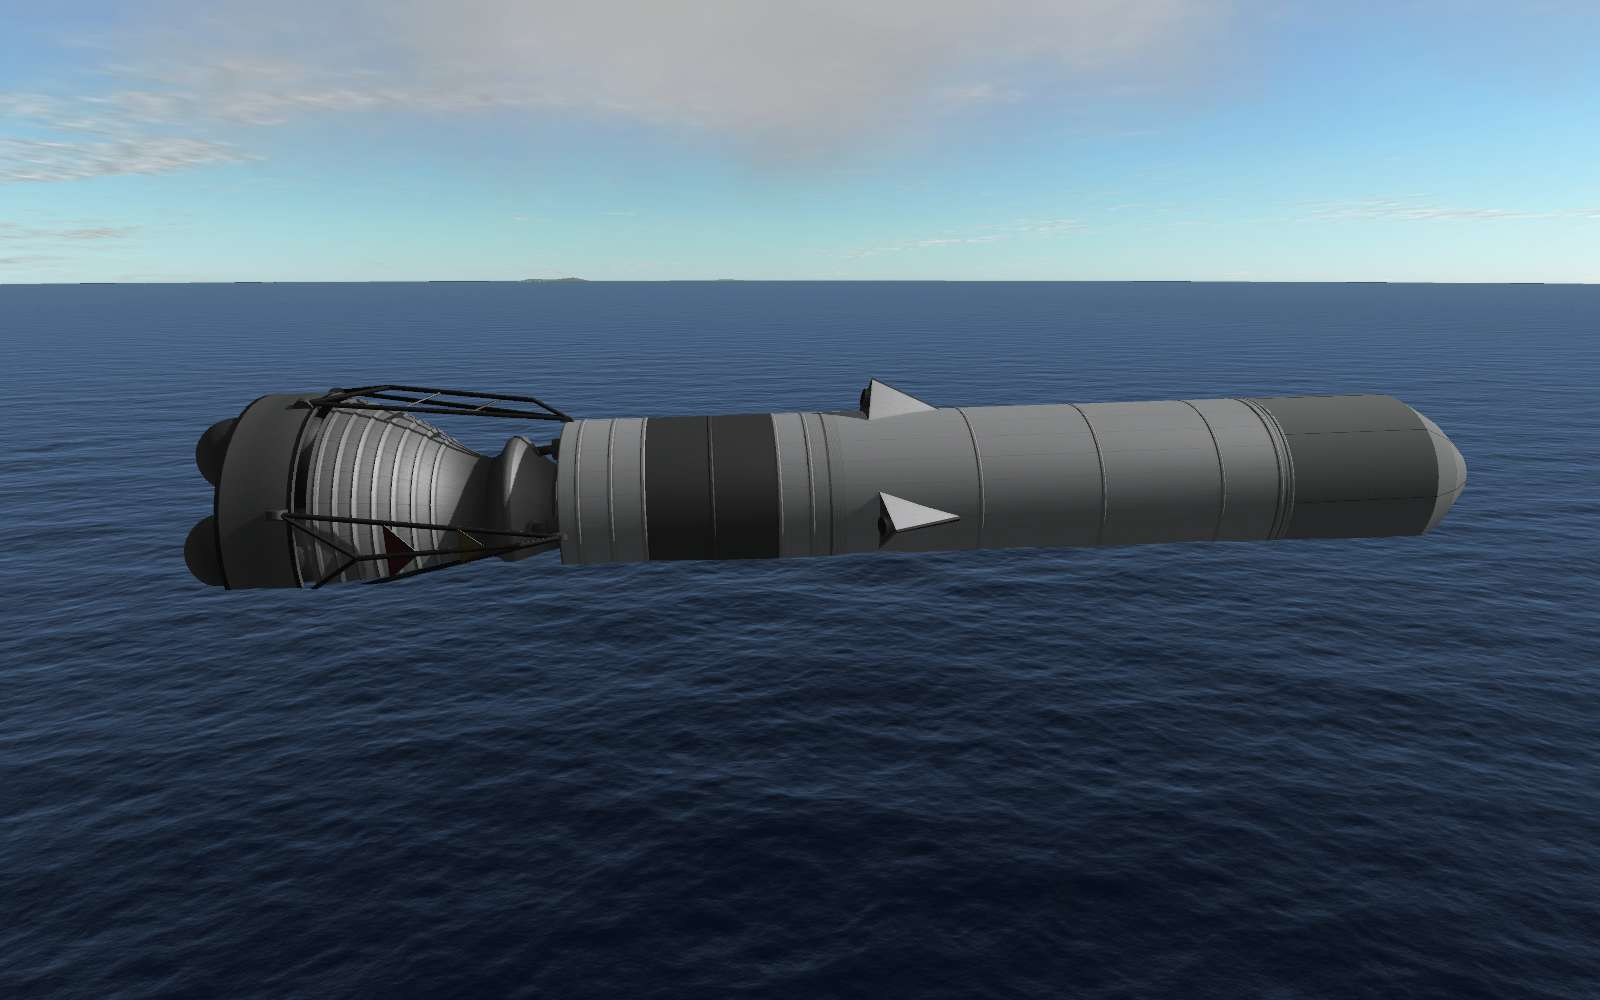 KSP 2016 03 28 16 20 56 92 1 2 1 3] real scale sea dragon 0 3 4 (2016 07 12) page 2 add on